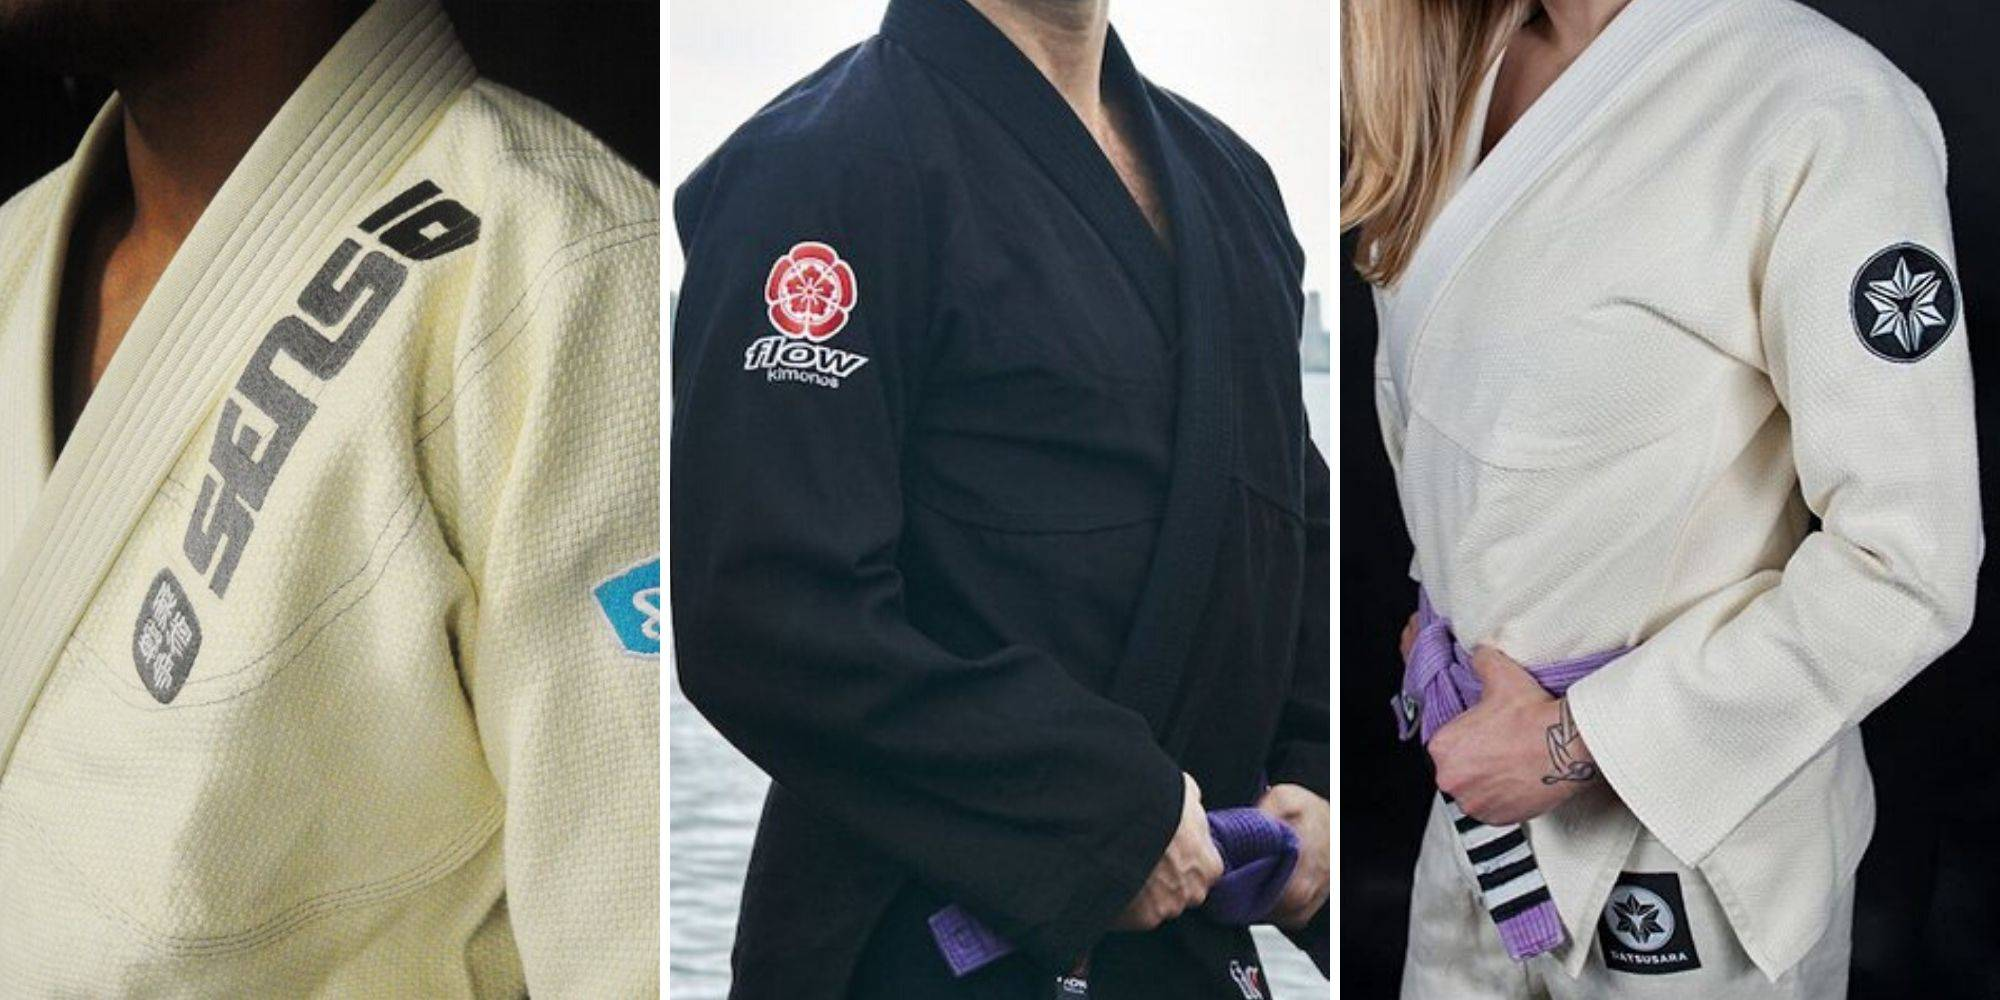 Various Hemp Gi Brands Being Modeled